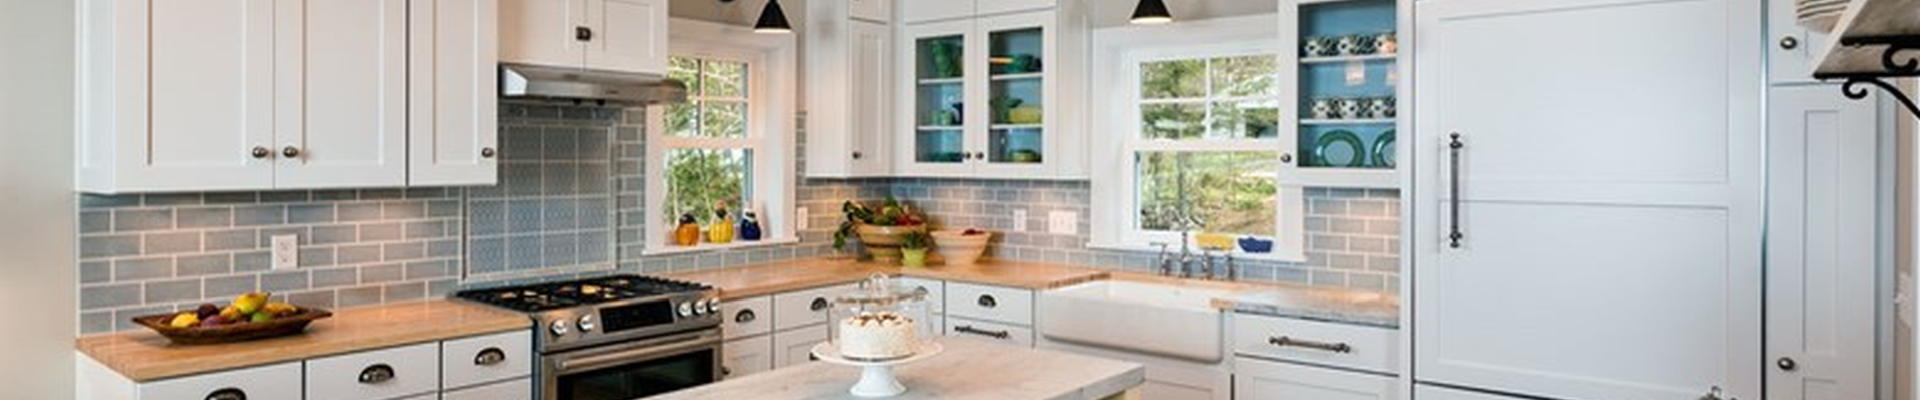 5 Signs That You're Ready for a Kitchen Remodel